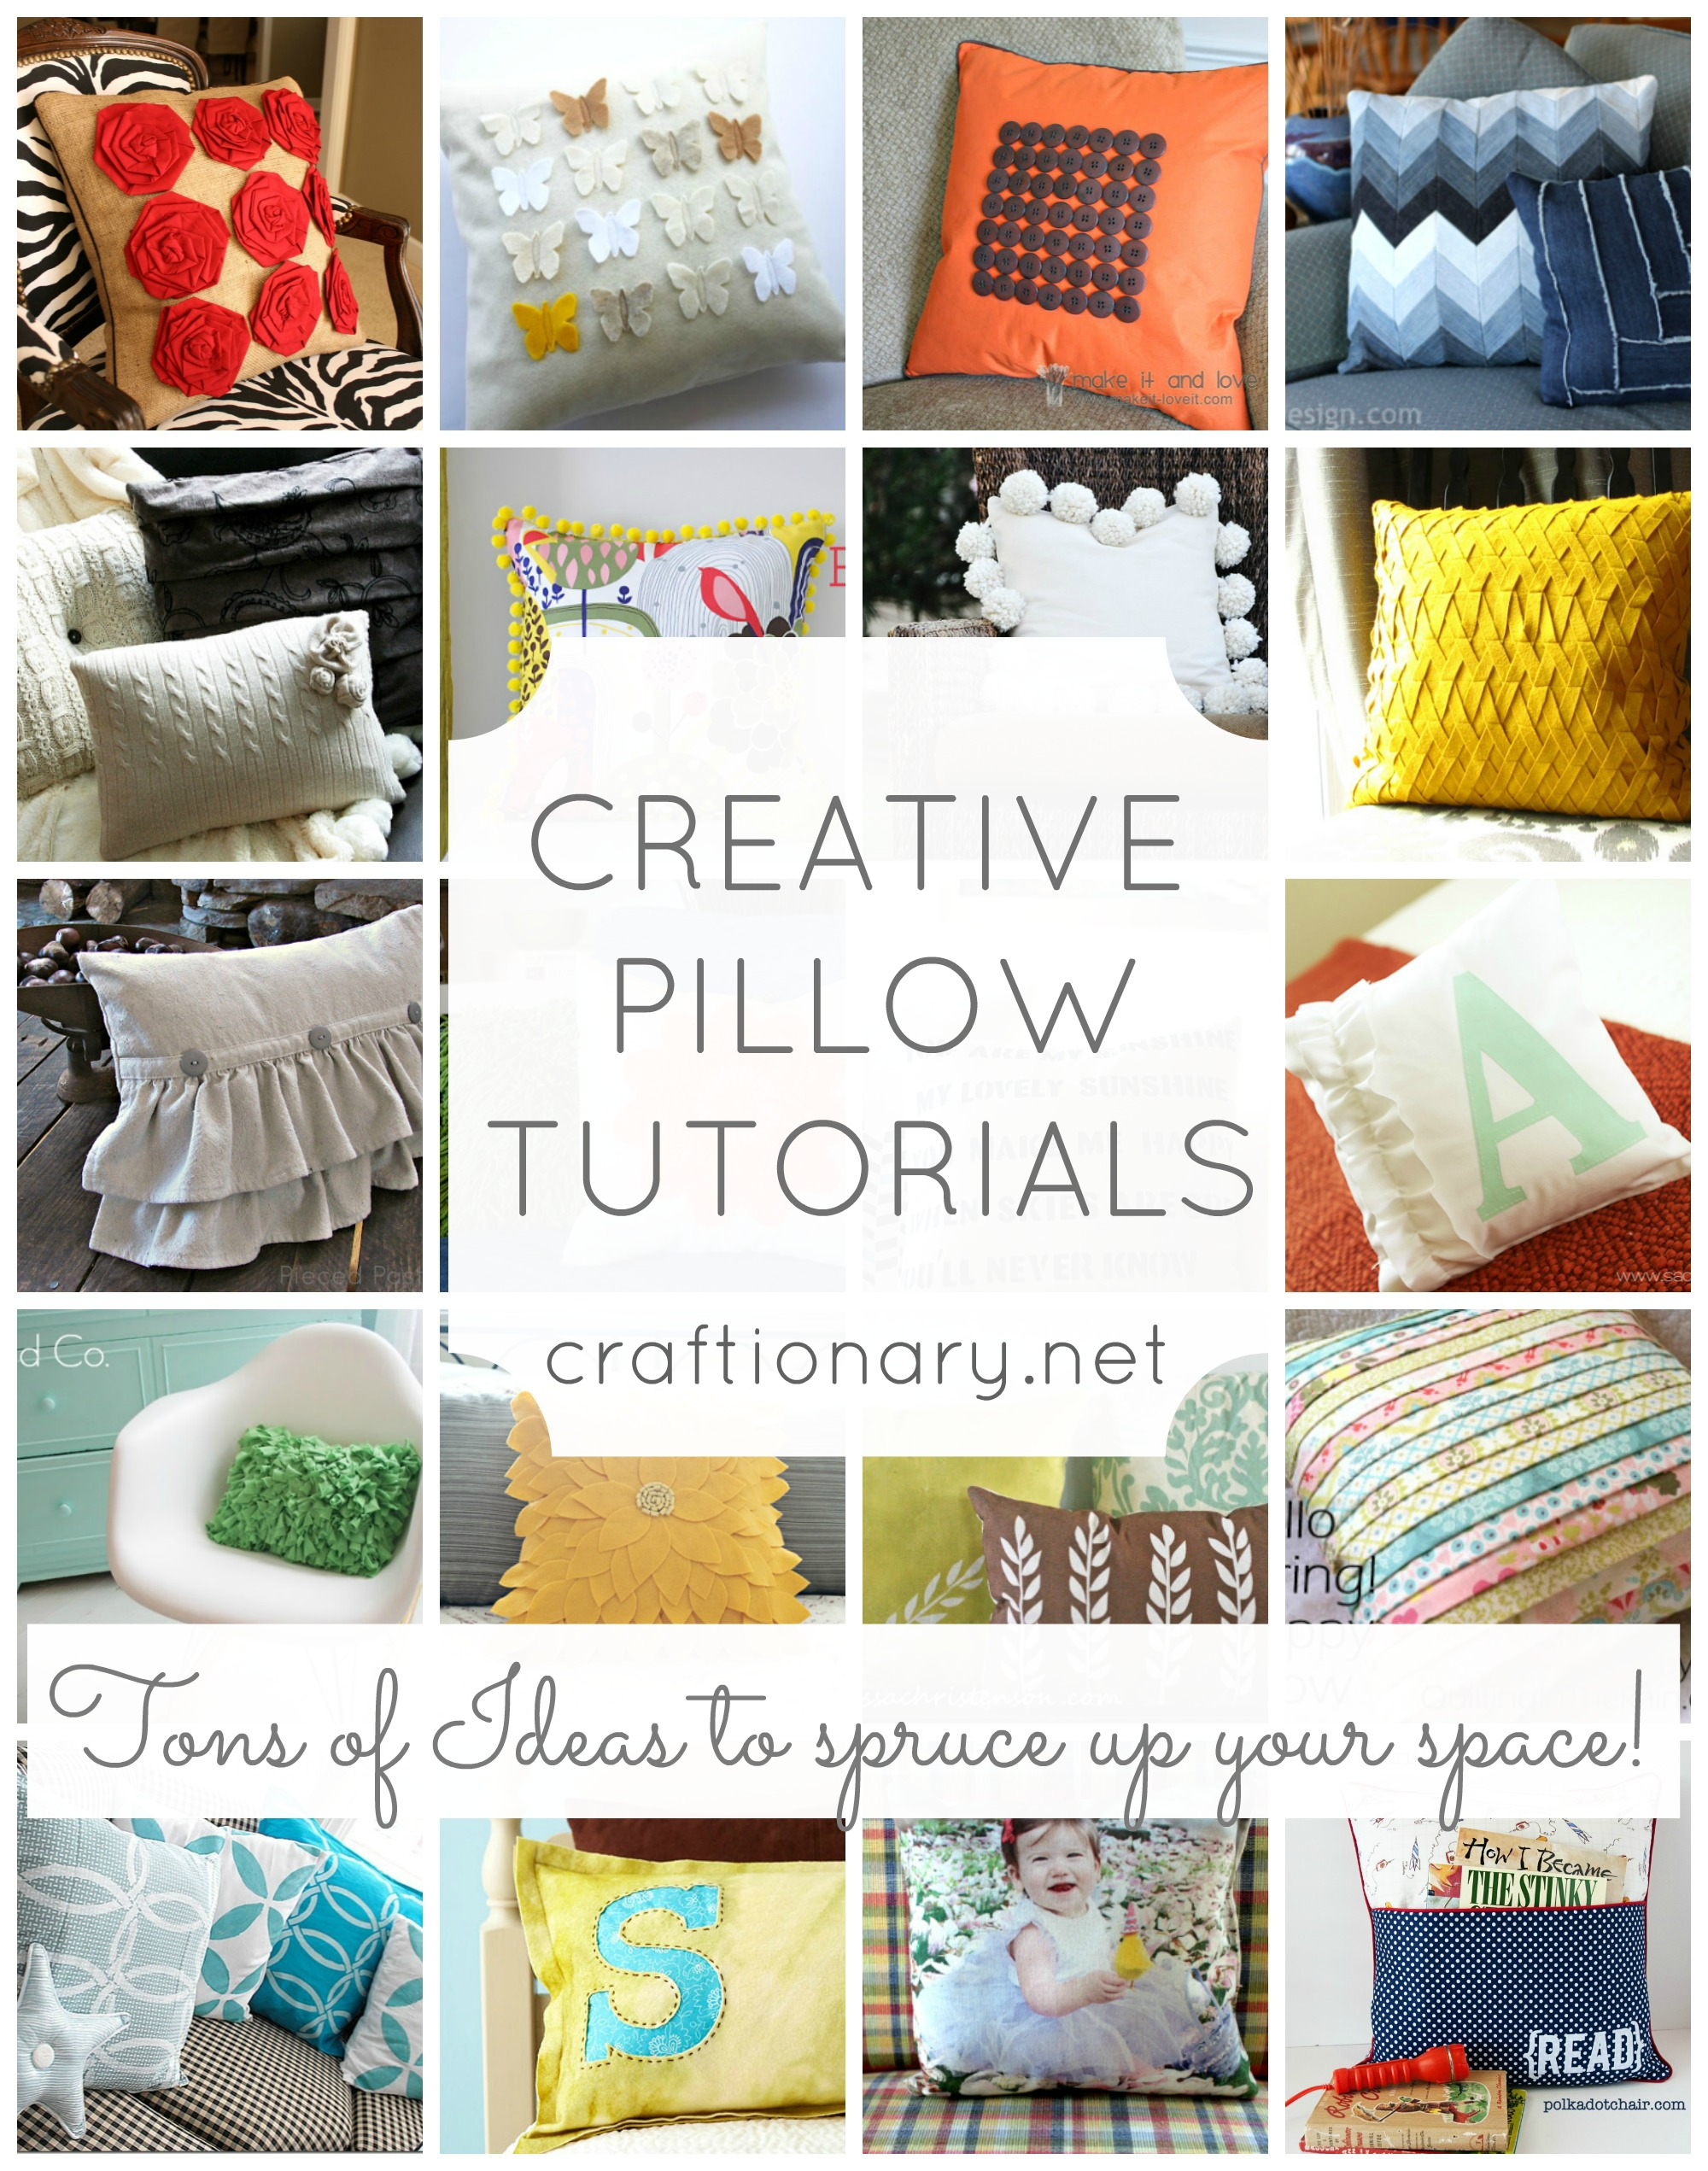 How To Make A Small Decorative Pillow : ALL NEW HOMEMADE PILLOW IDEAS DIY Pillow